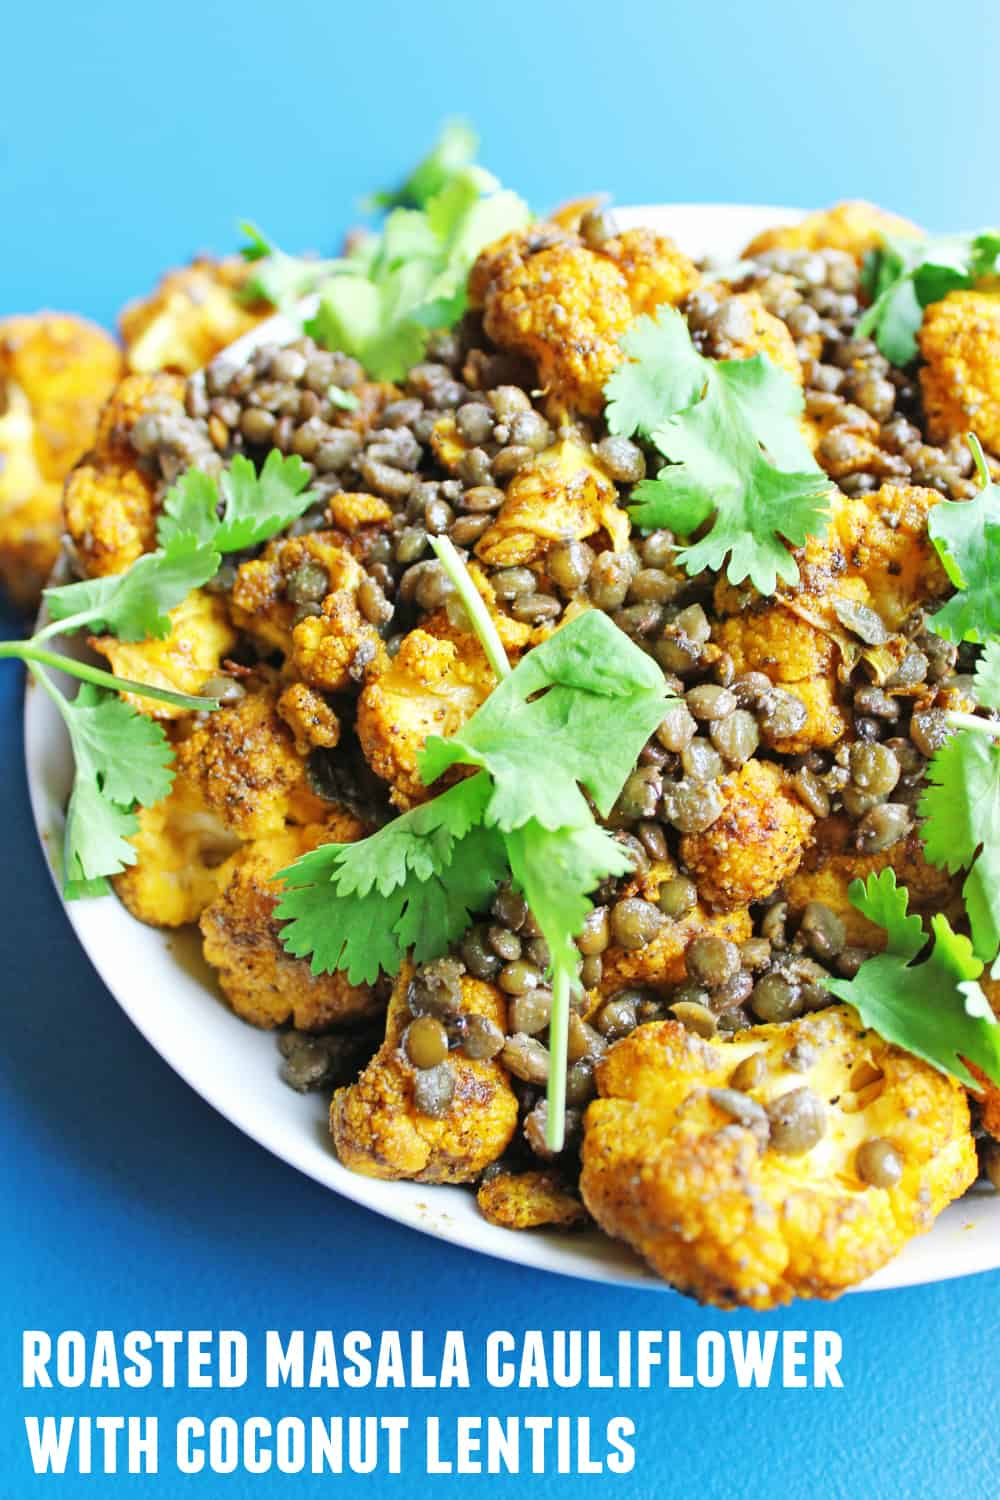 Roasted masala cauliflower with coconut lentils! A super simple, vegan recipe perfect for a weeknight meal. Serve as a delicious side, or with rice and naan bread as an entree. Vegan, vegetarian, dairy free, gluten free. SO GOOD!